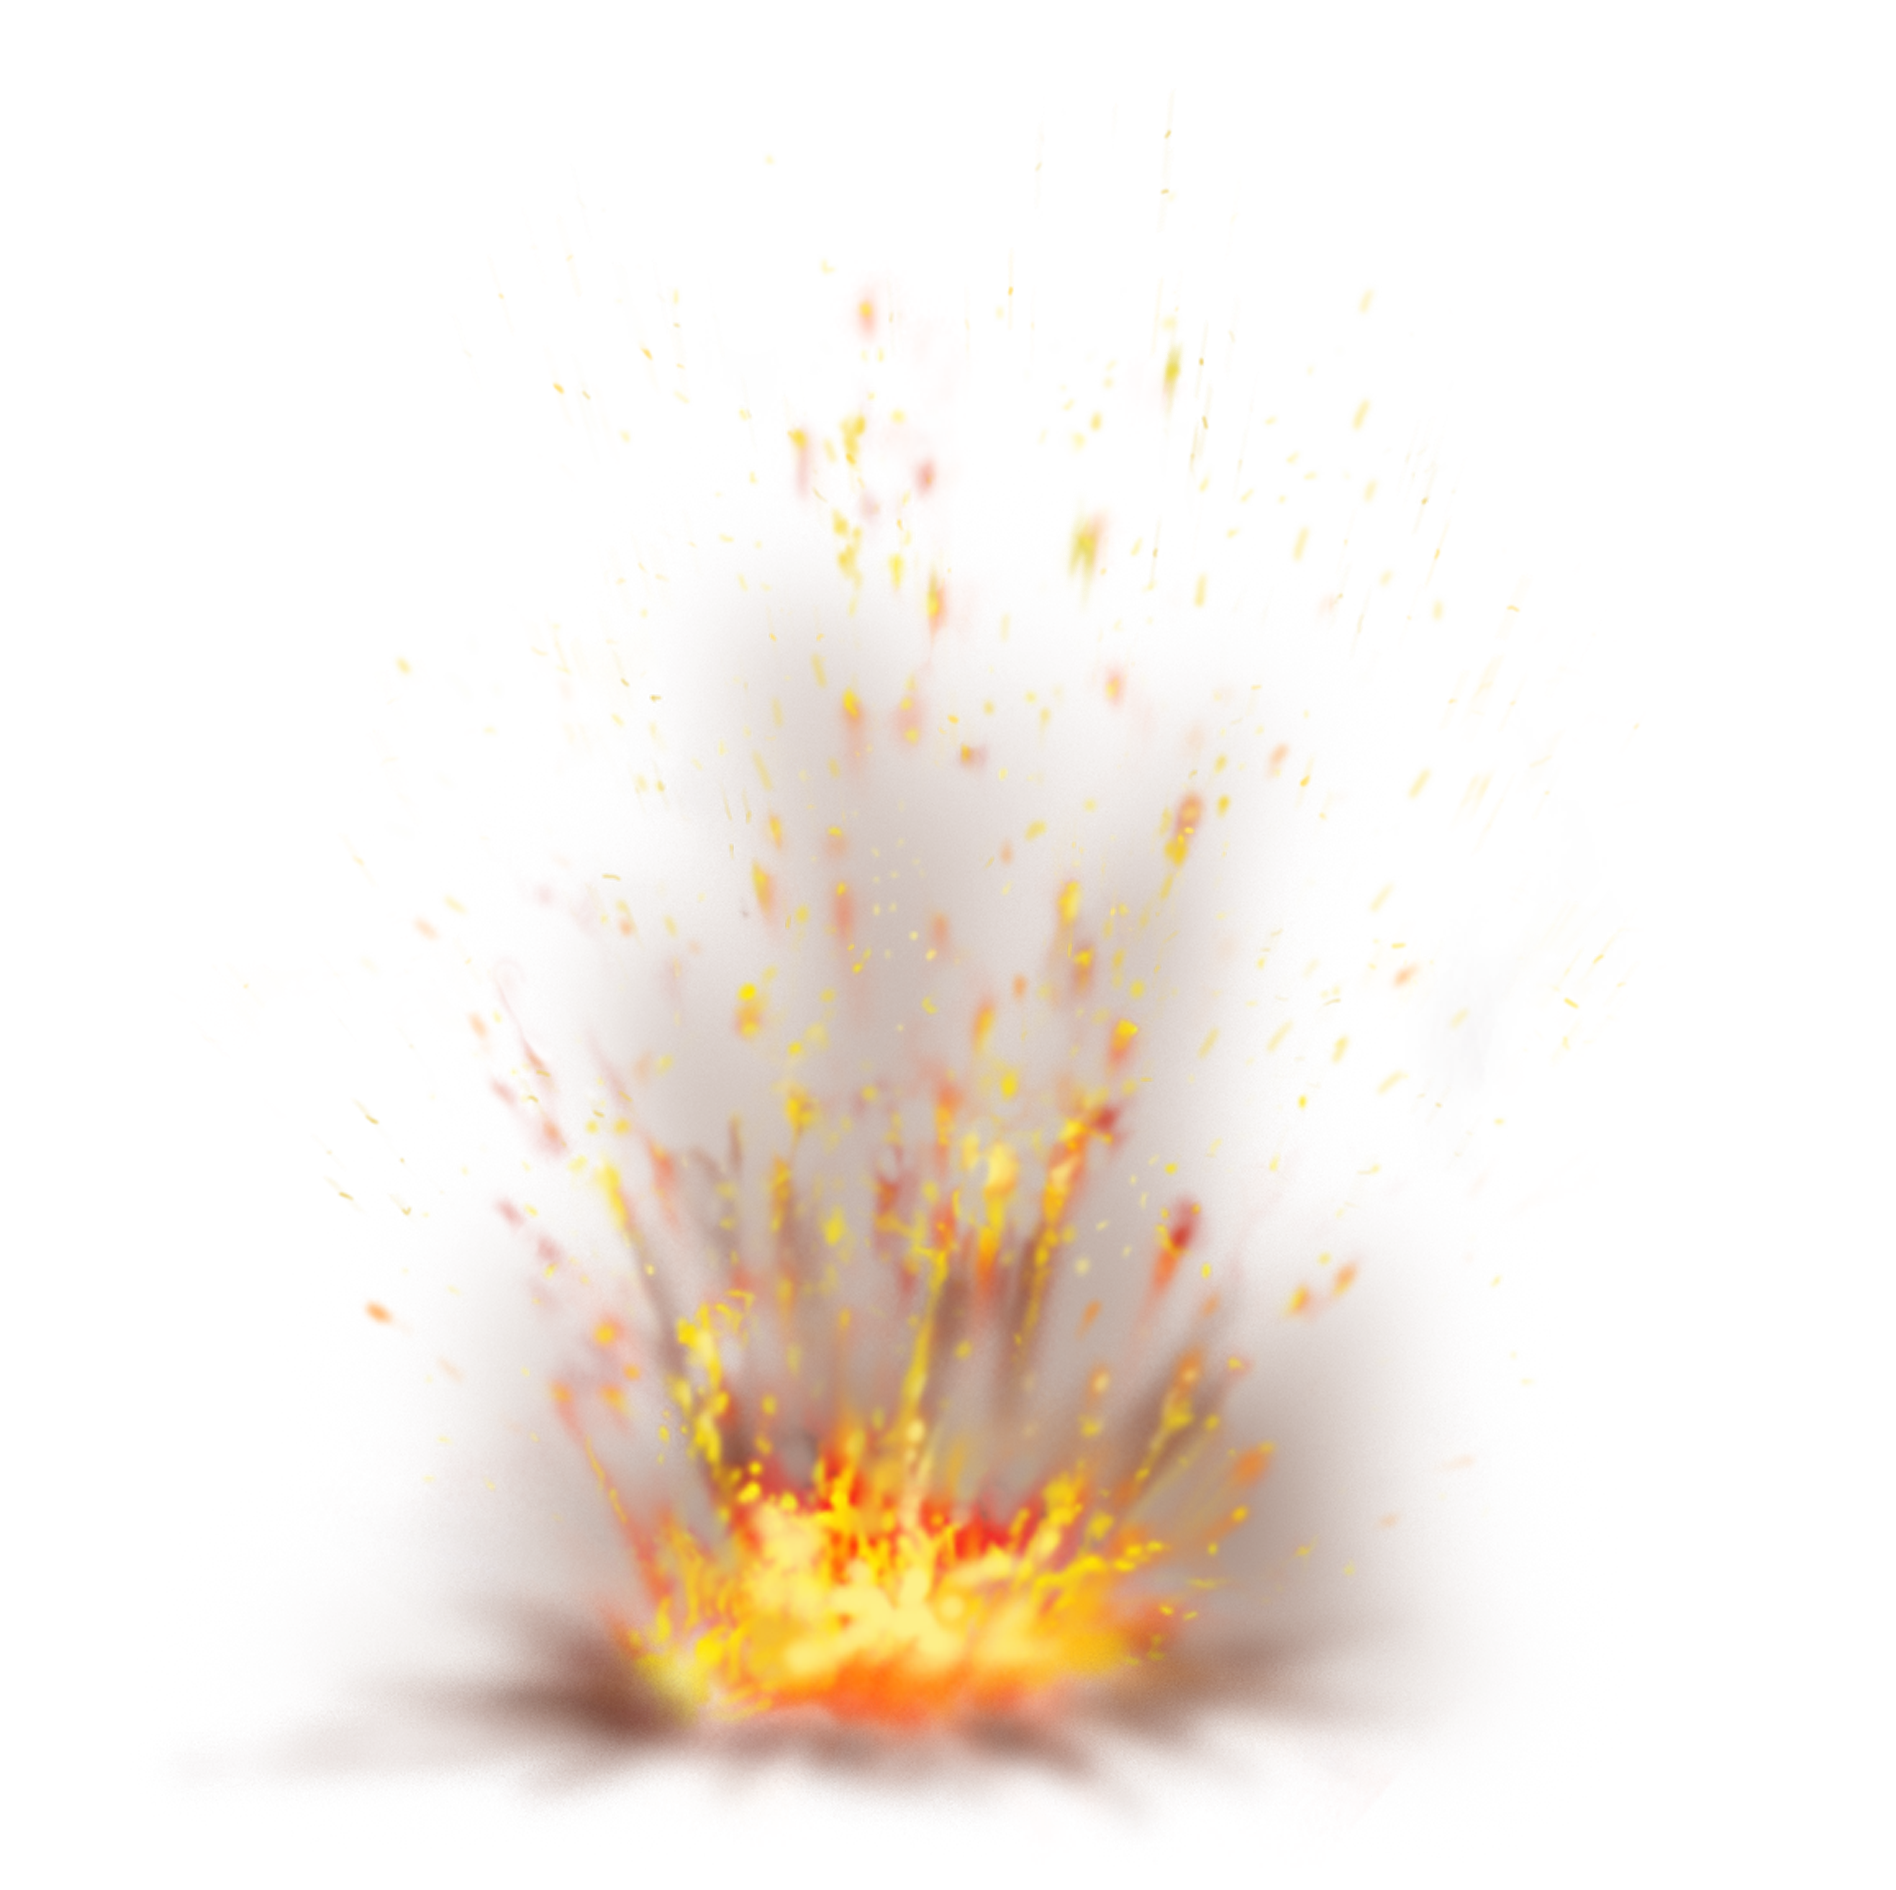 Firefox with Sparks PNG Clipart Picture | Picsart png ...